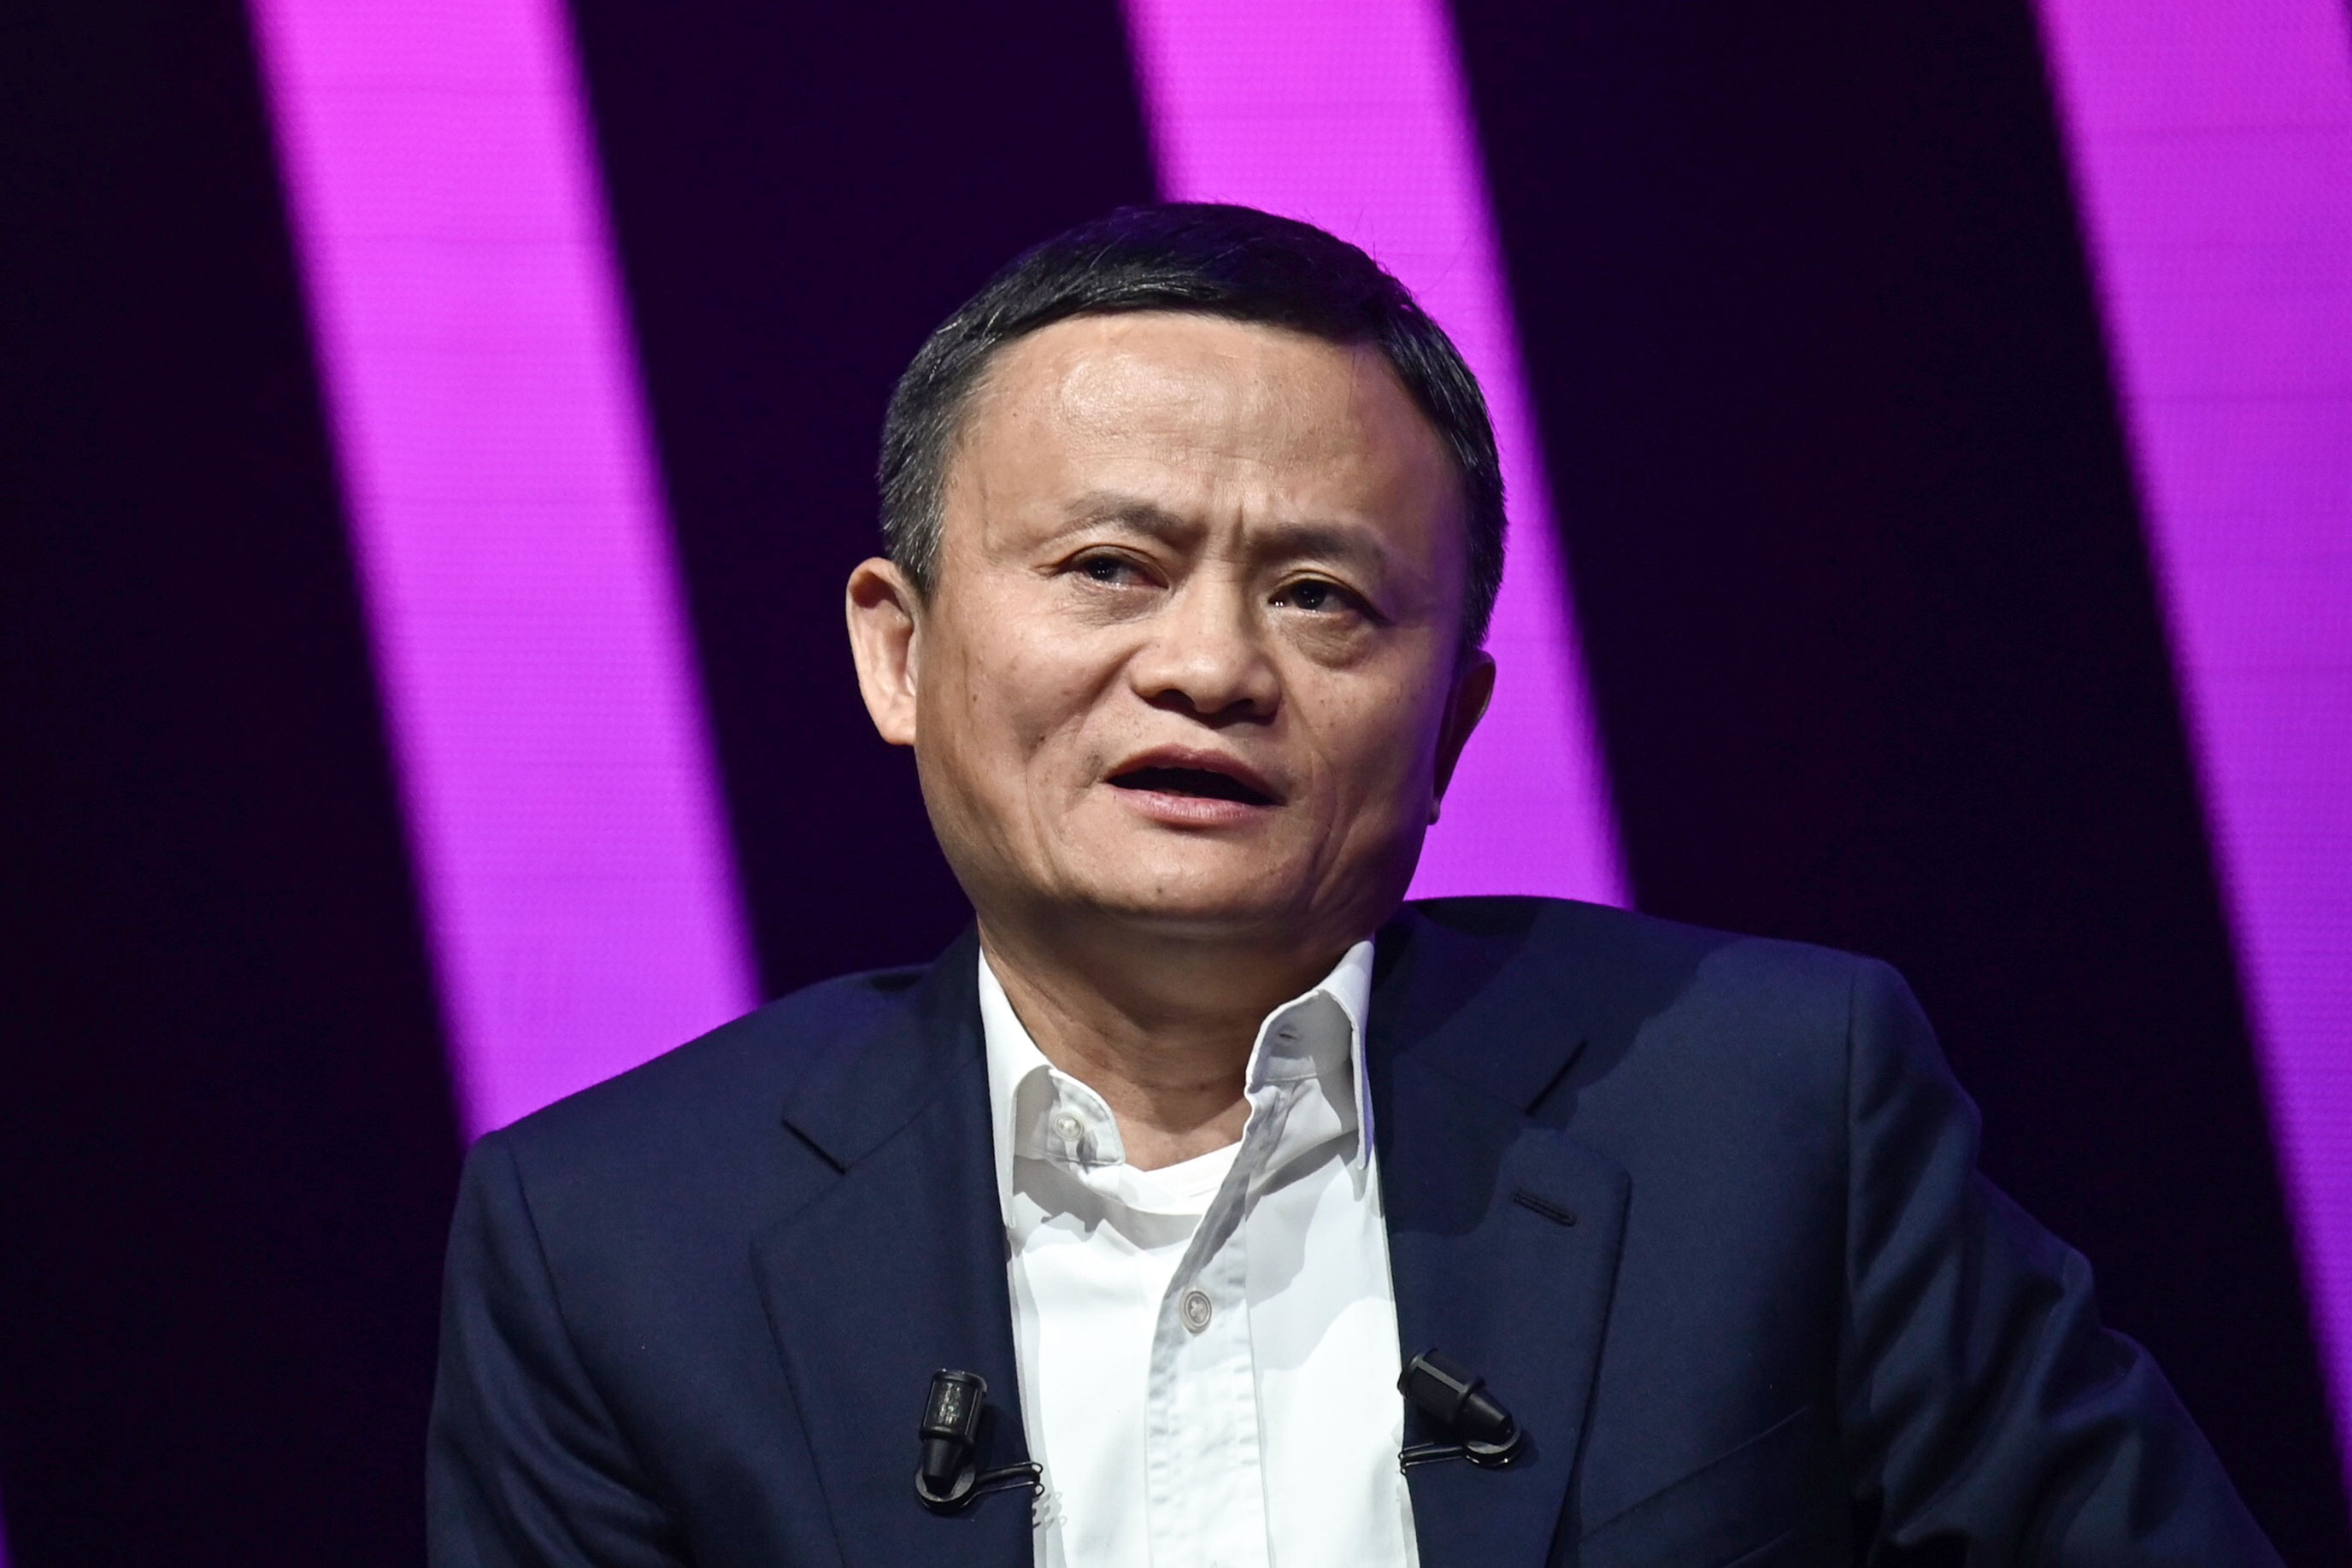 Jack Ma cashes out billions of dollars in Alibaba shares as stock booms